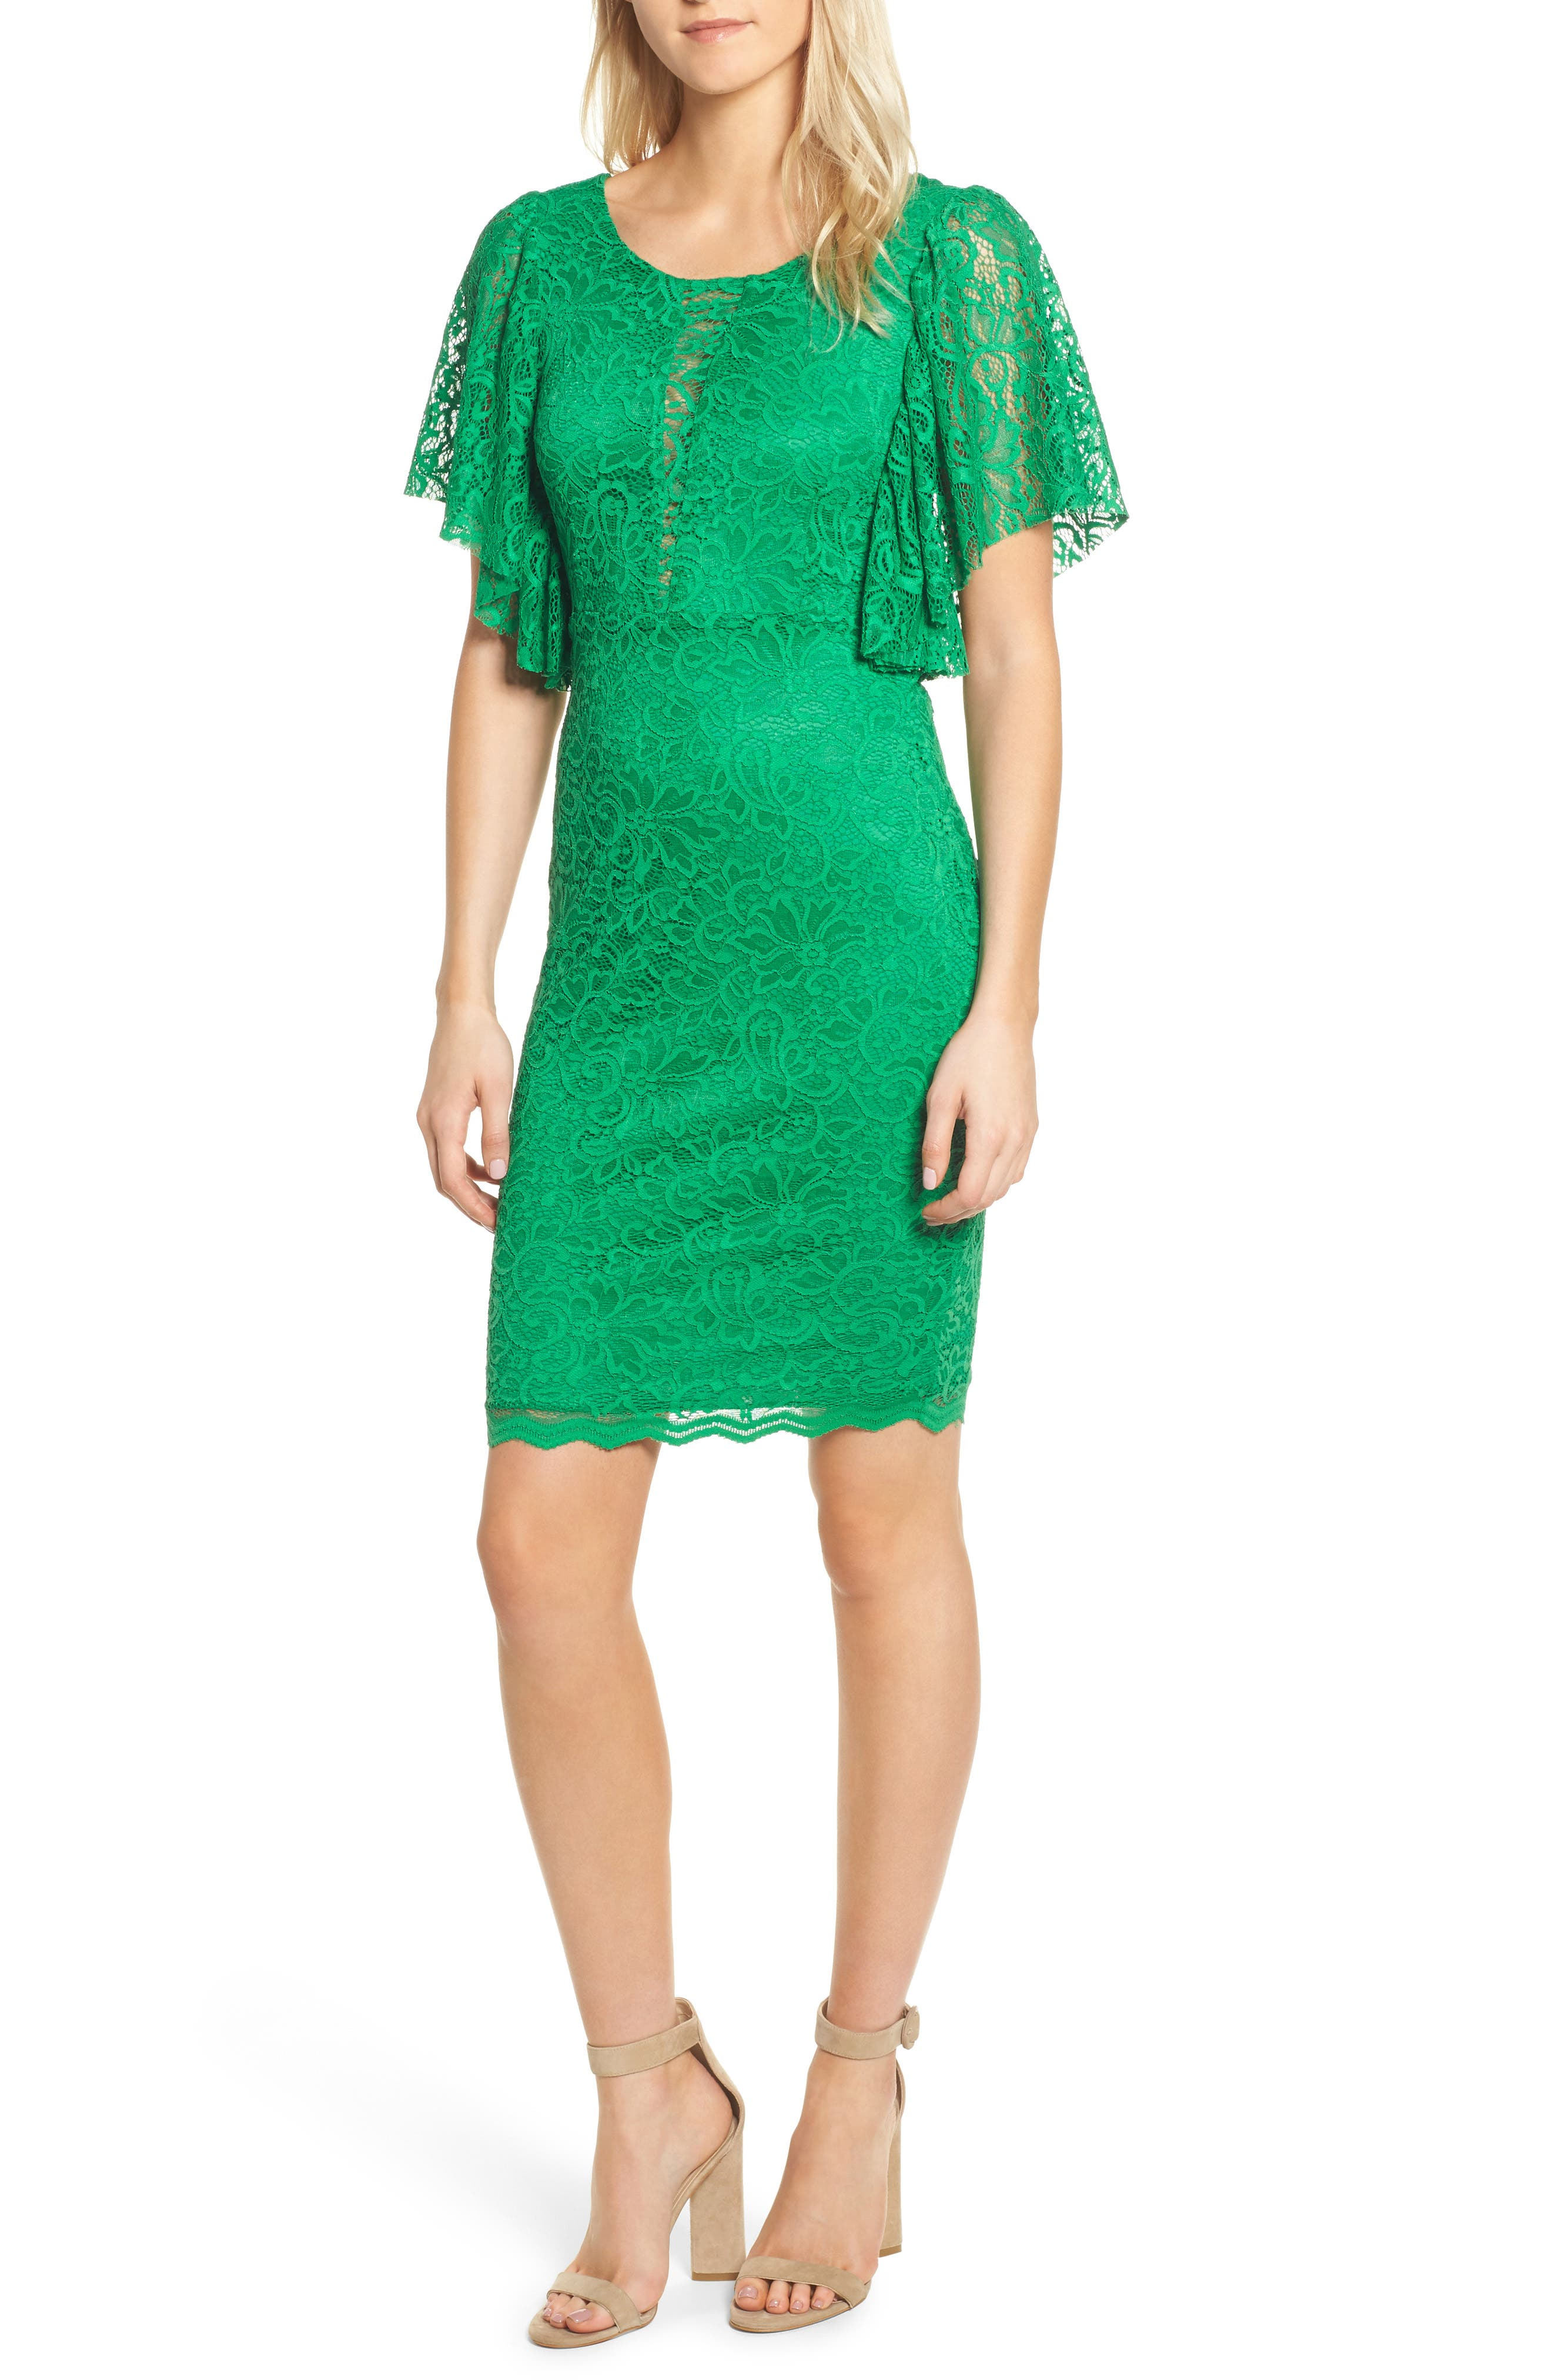 Sentimental NY Lace Sheath Dress